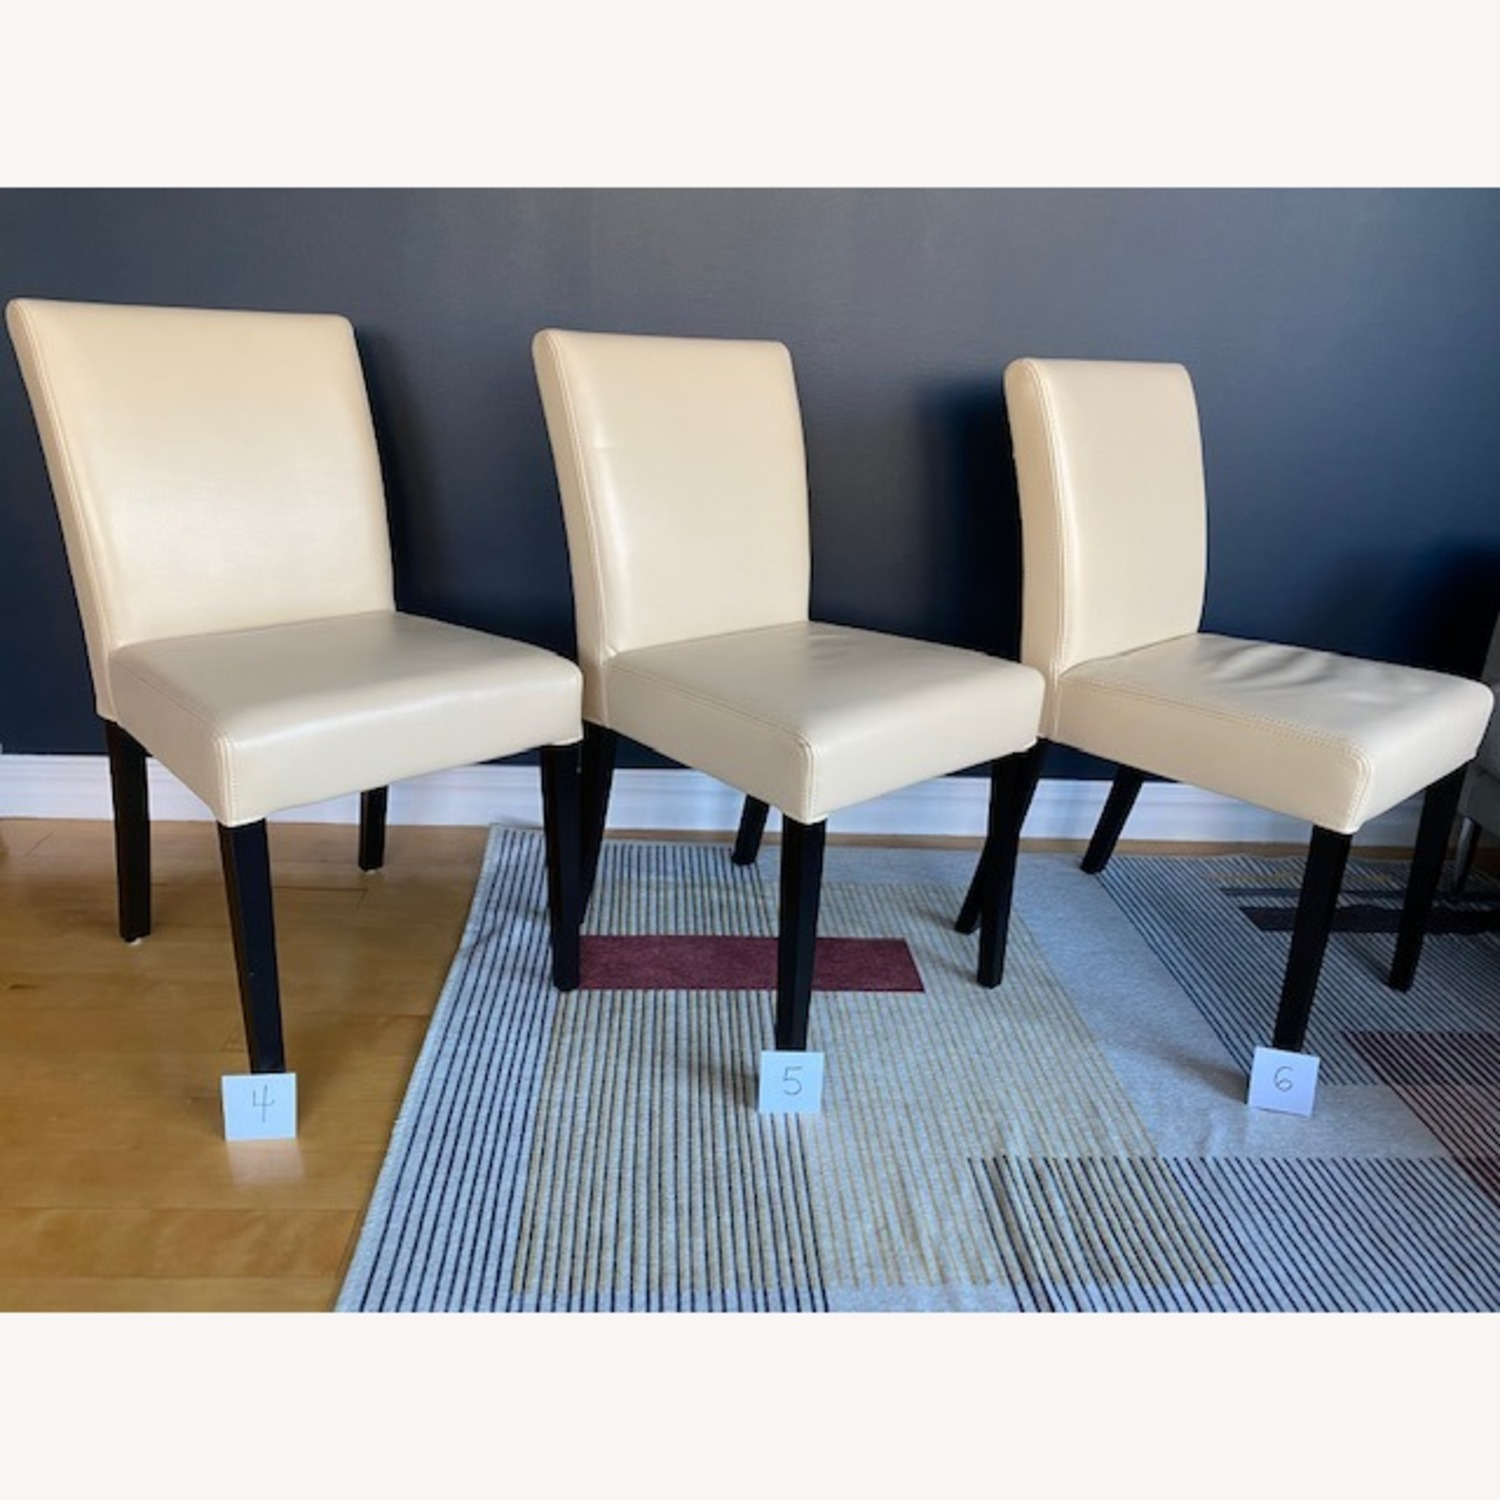 Crate & Barrel Lowe Ivory Leather Dining Chairs - image-9